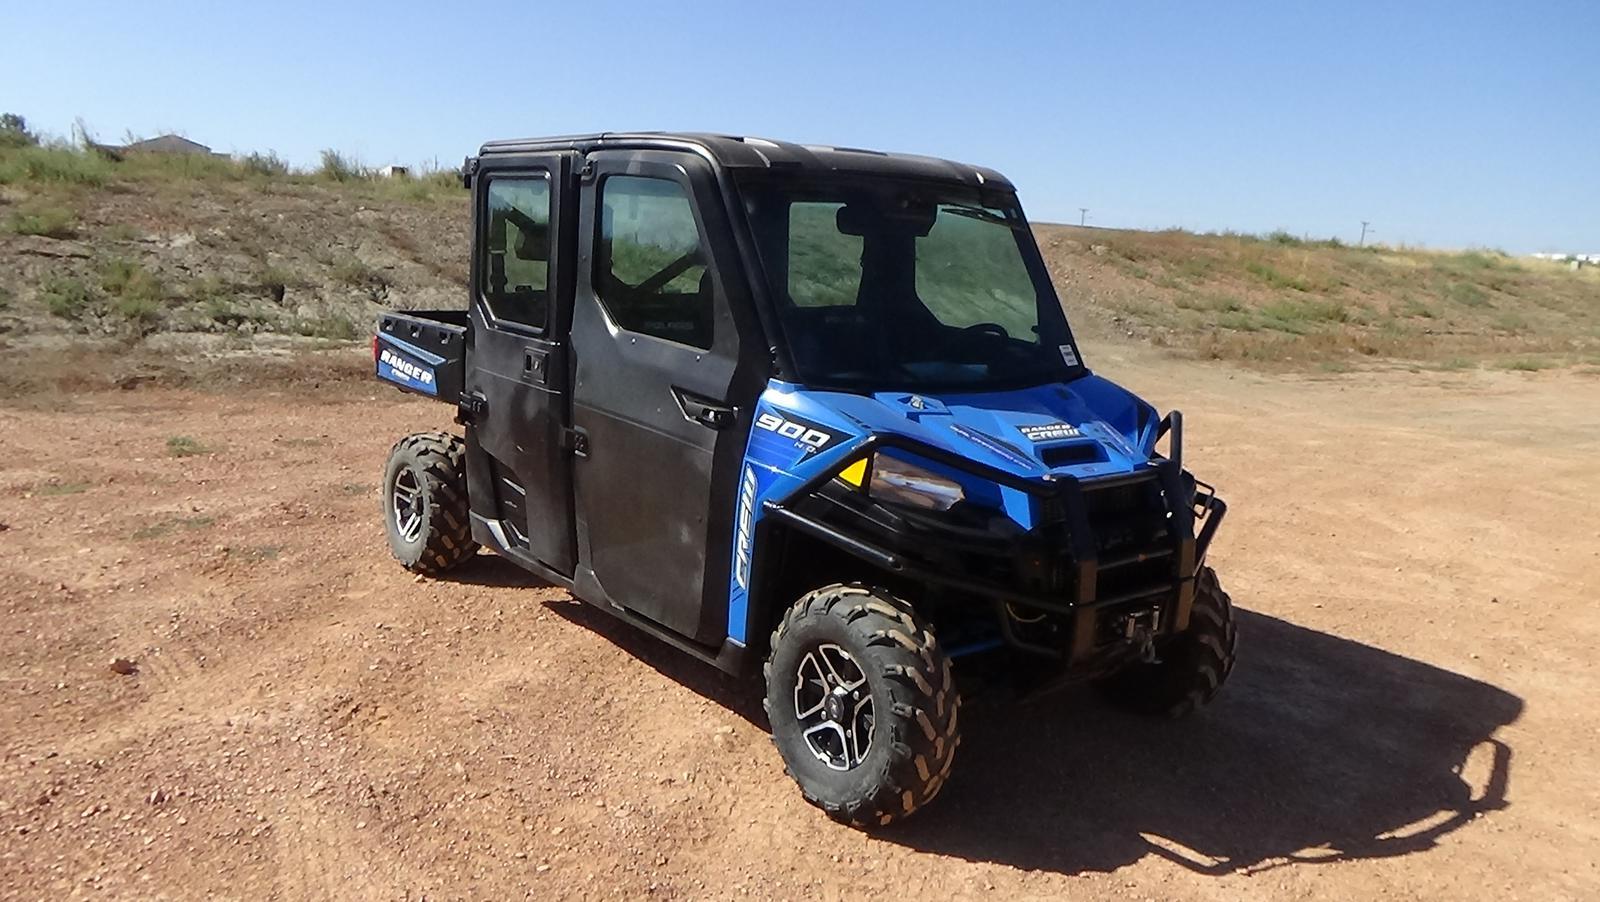 2016 polaris industries ranger crew� xp 900-6 eps - velocity blue